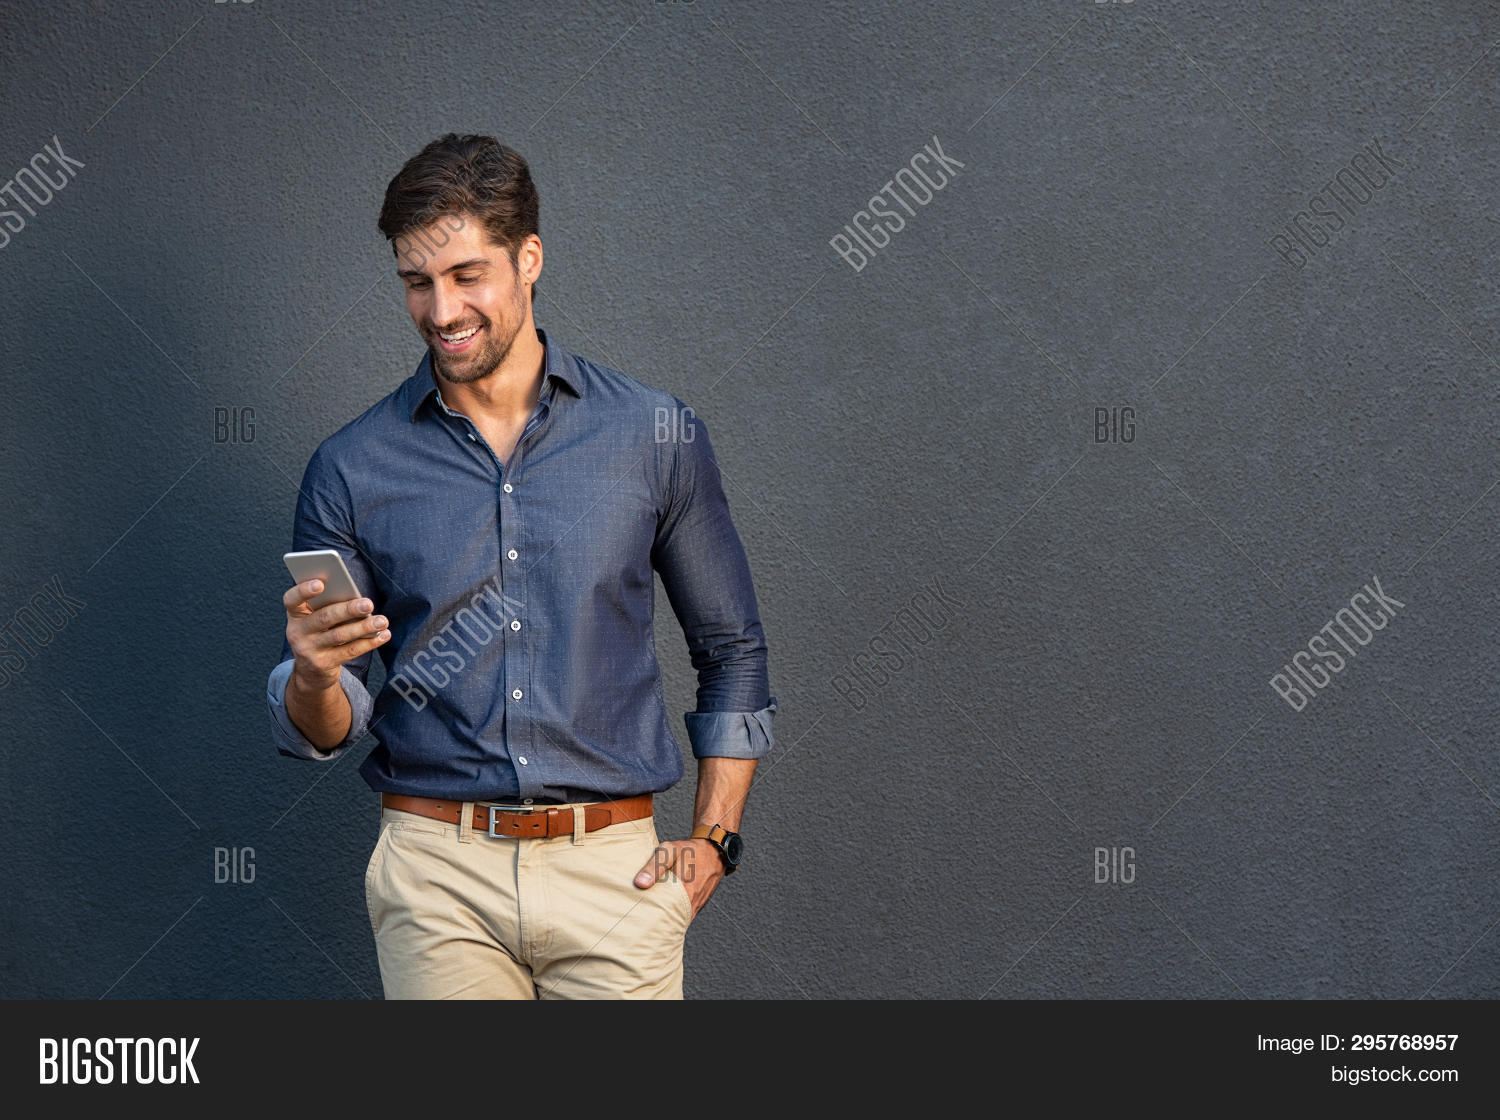 Portrait of young man leaning against a grey wall using mobile phone. Happy business man messaging w